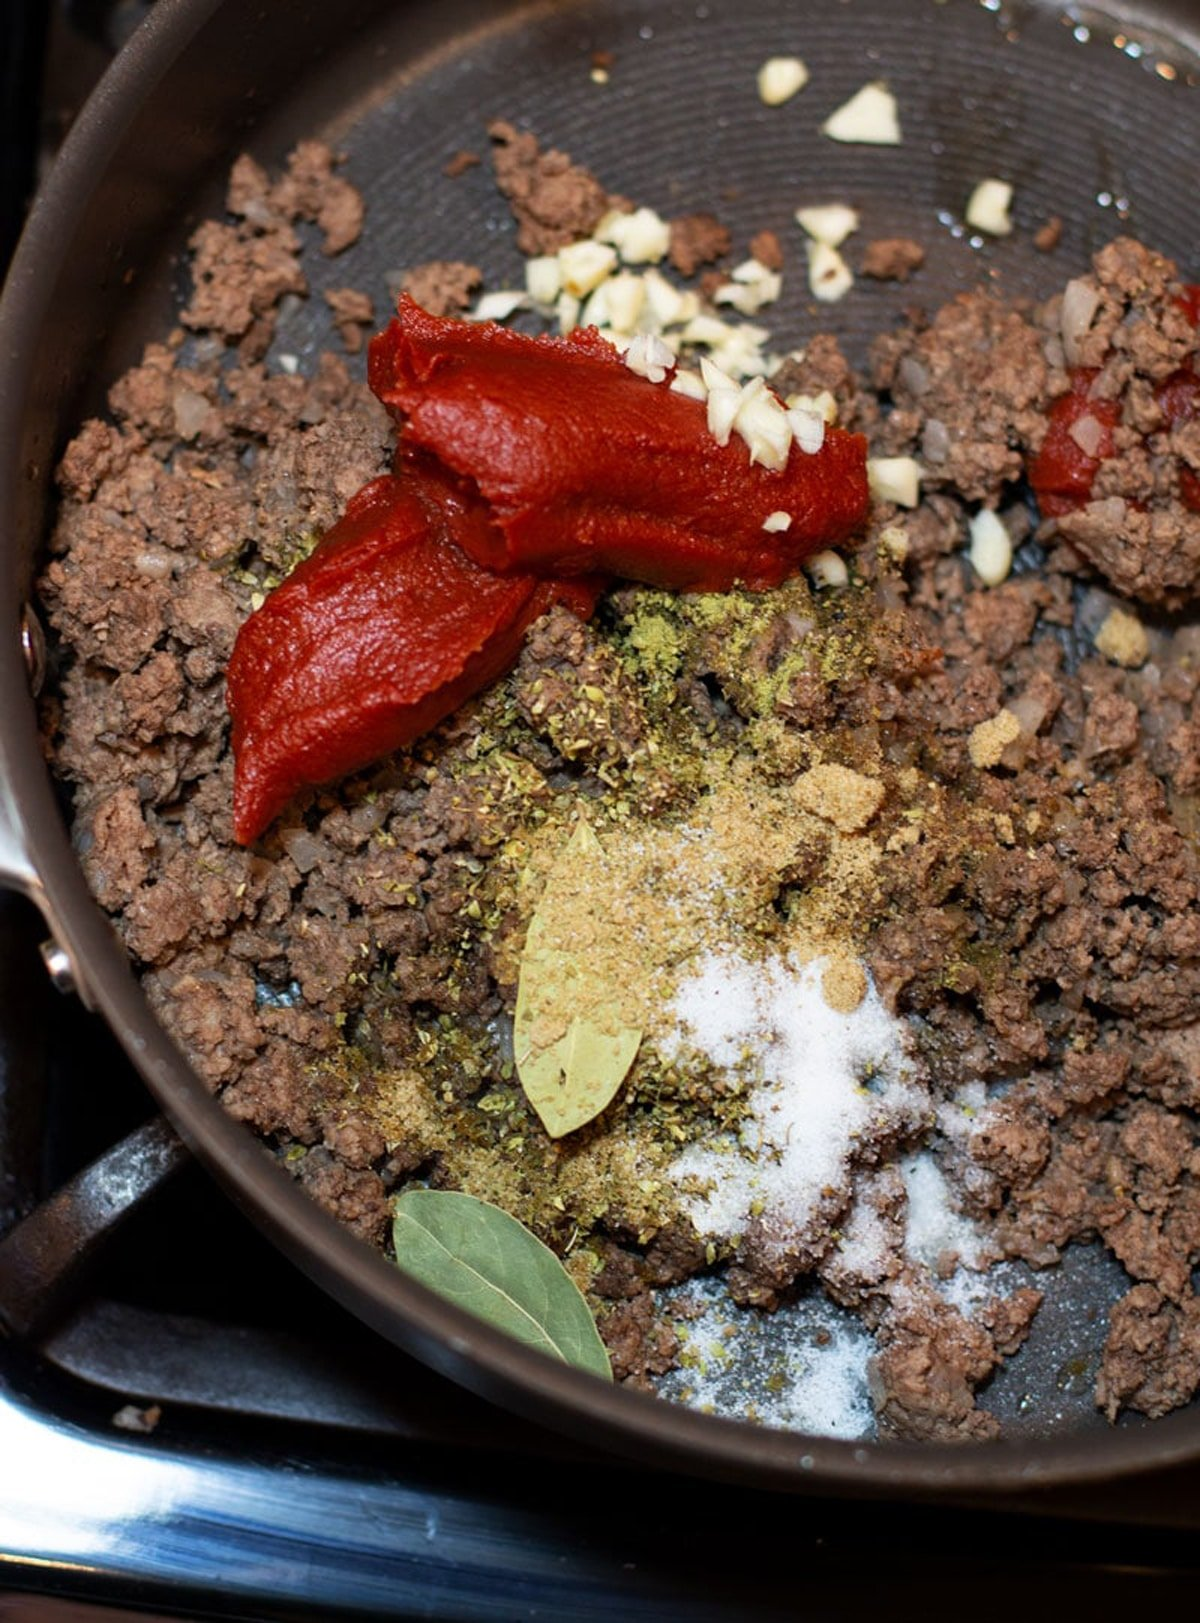 Skillet with Ground beef, tomato paste, and spices in a skillet.